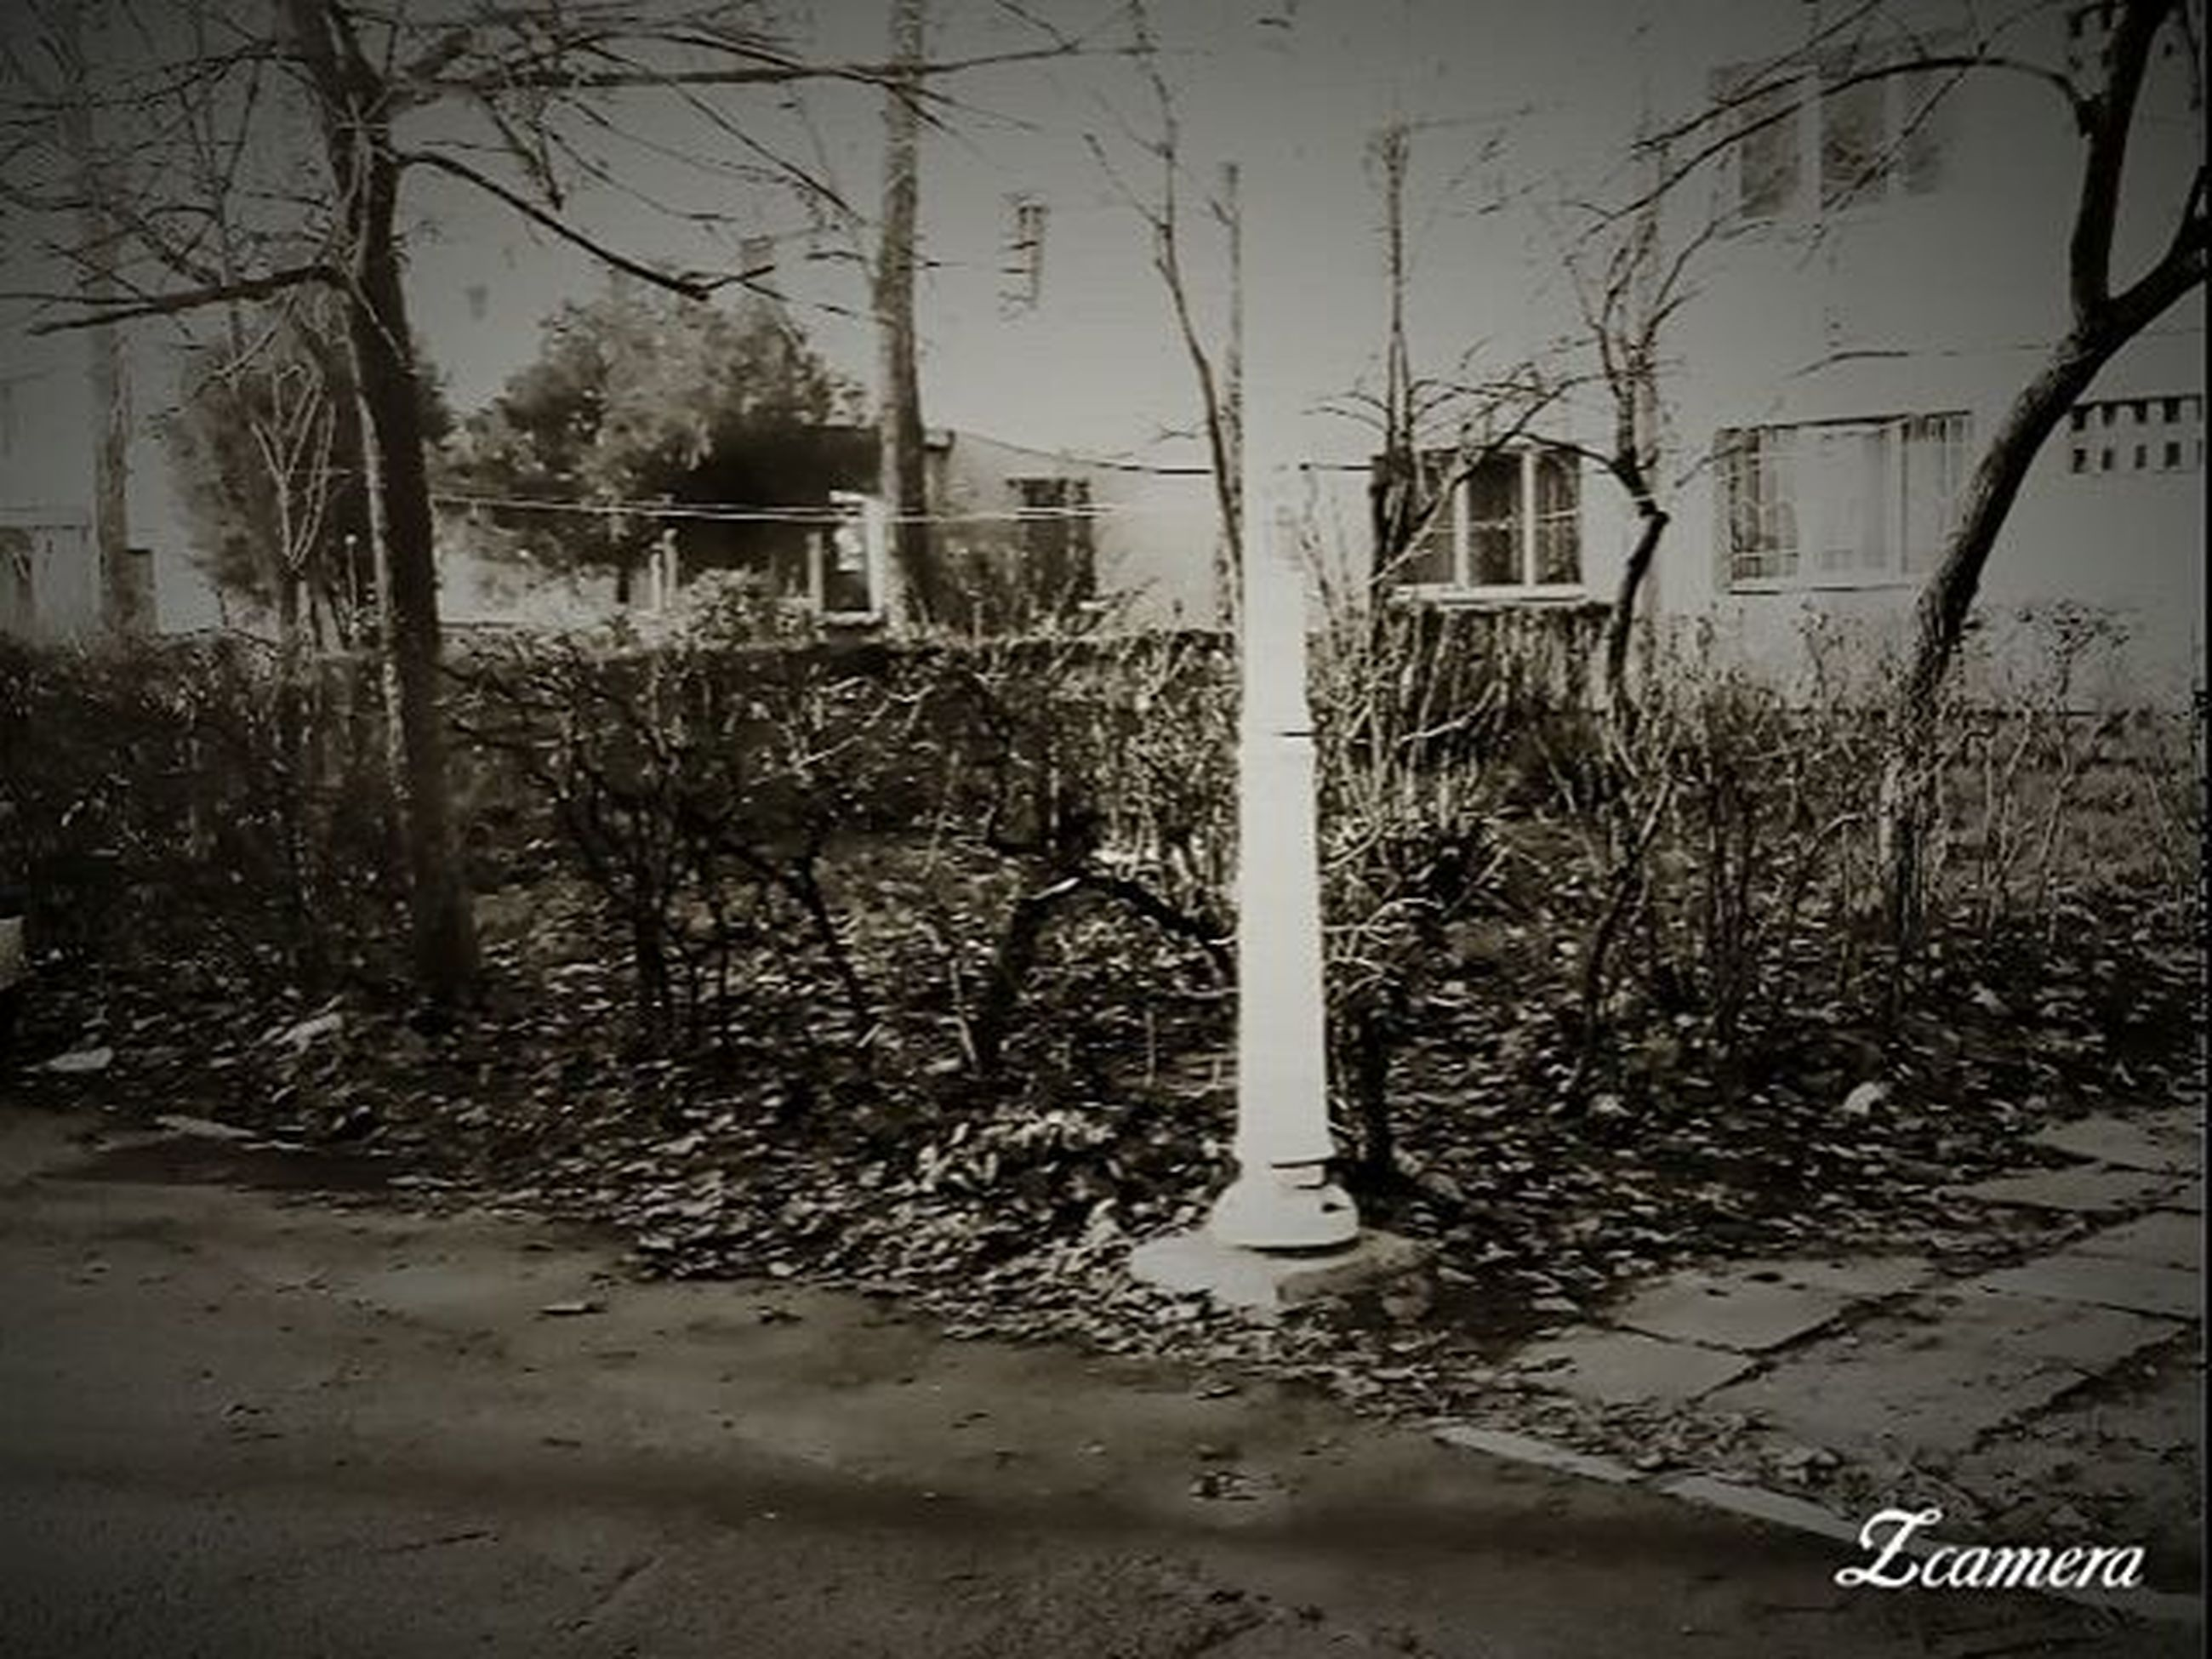 building exterior, architecture, built structure, tree, bare tree, text, city, house, residential building, residential structure, branch, day, outdoors, no people, western script, communication, street, tree trunk, building, nature